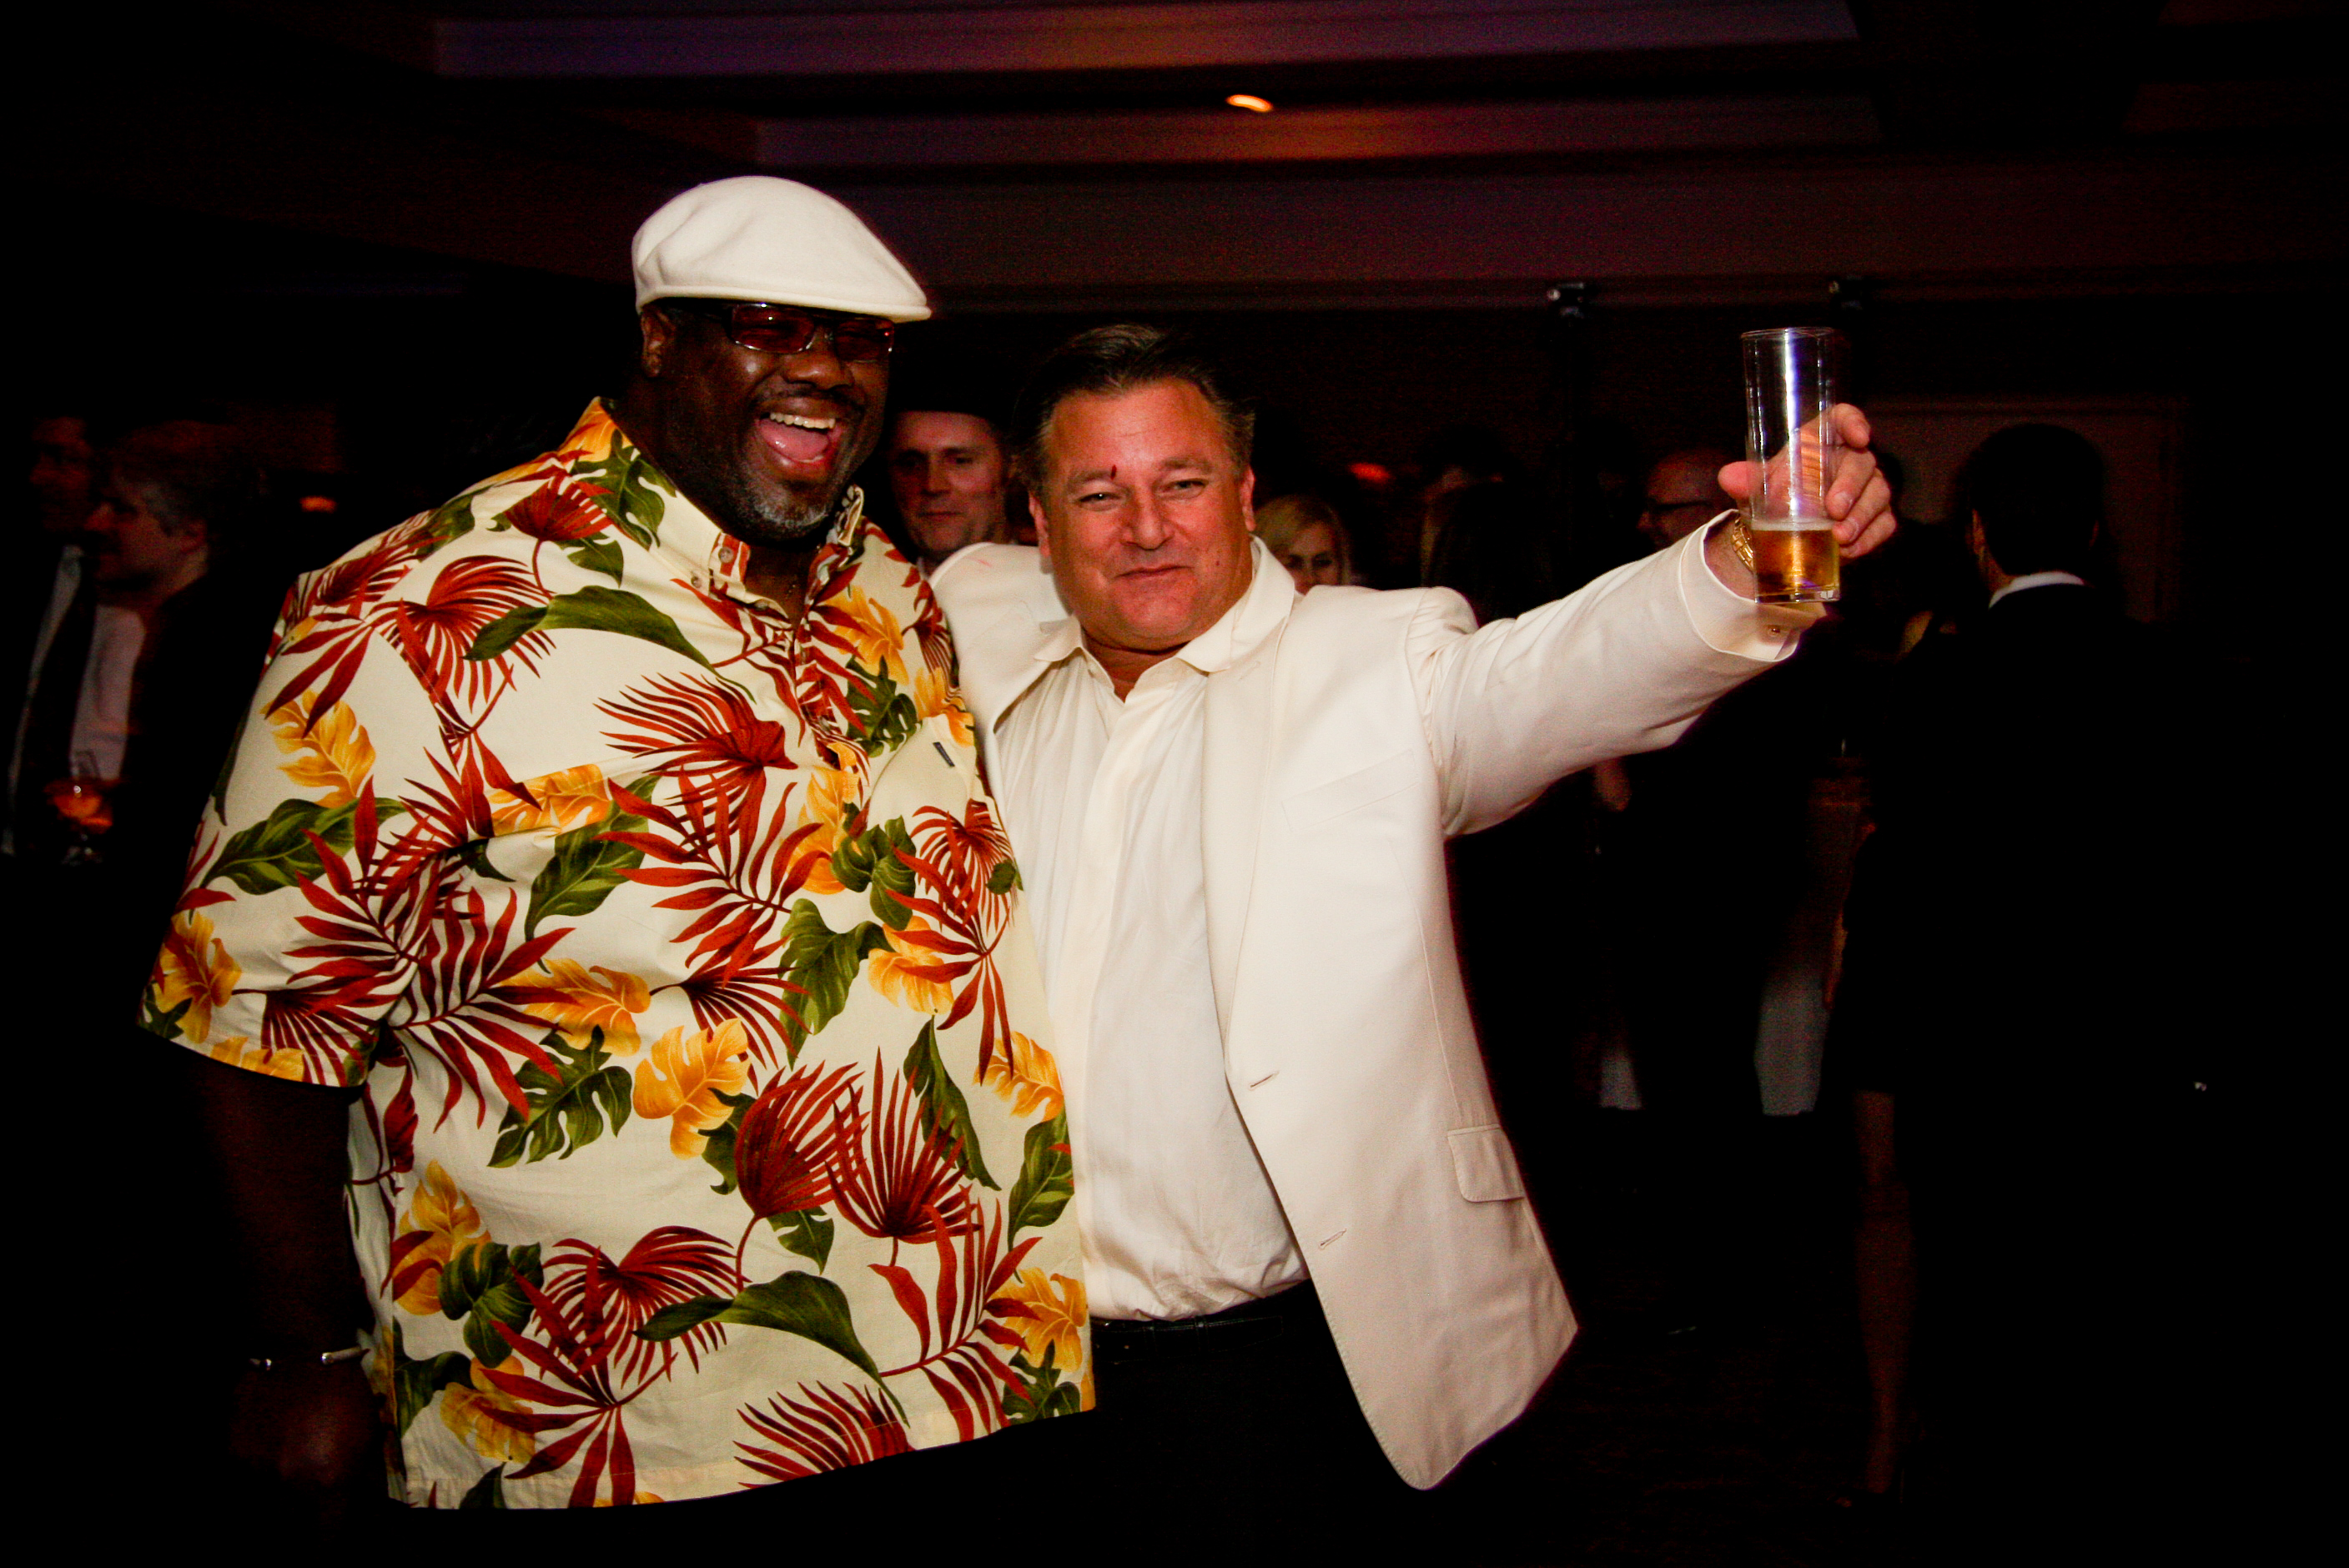 Melvin Seal and Vince